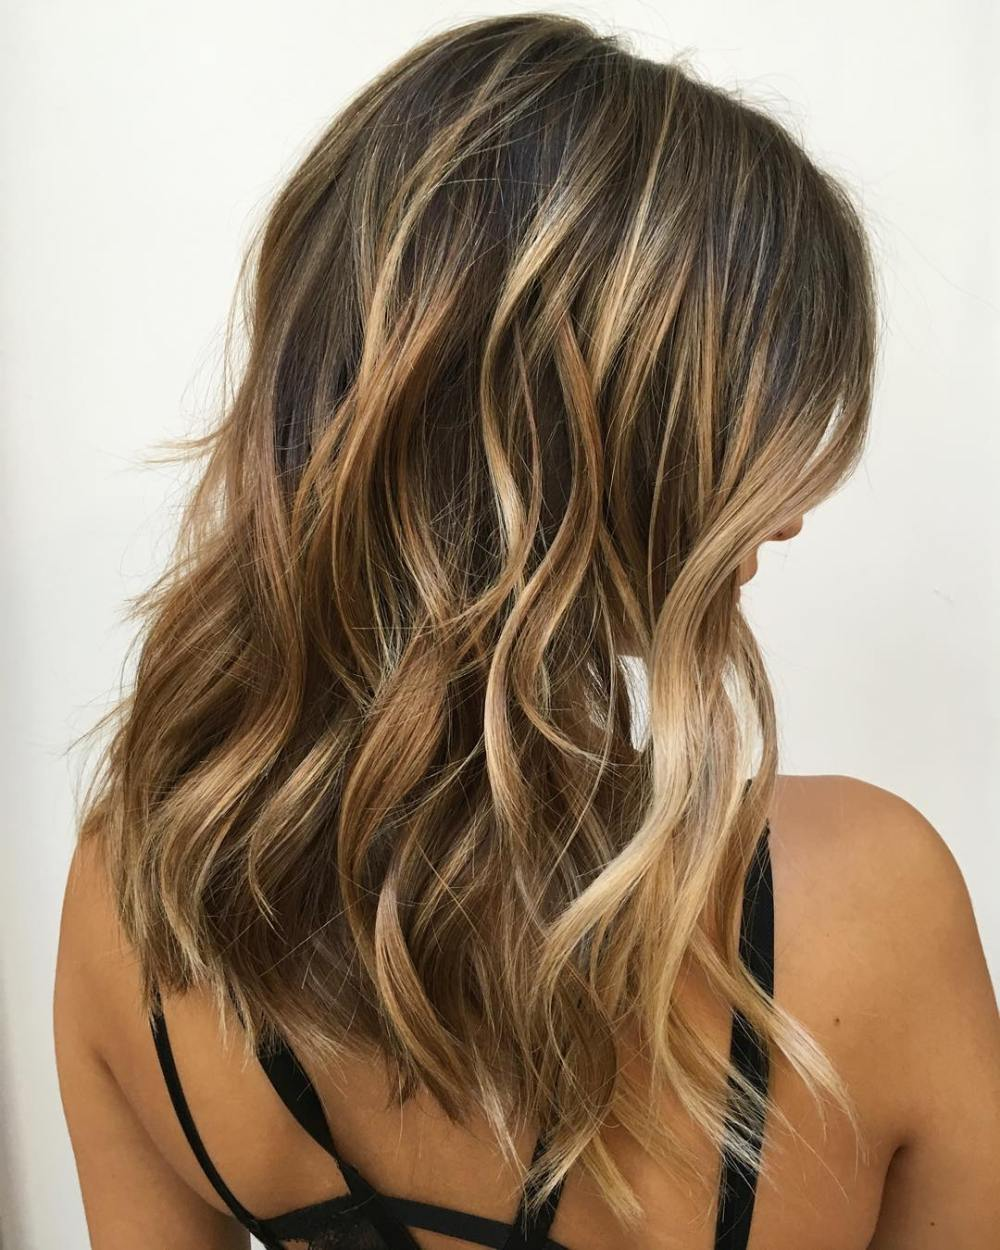 trubridal wedding blog 90 balayage hair color ideas with blonde brown and caramel highlights. Black Bedroom Furniture Sets. Home Design Ideas